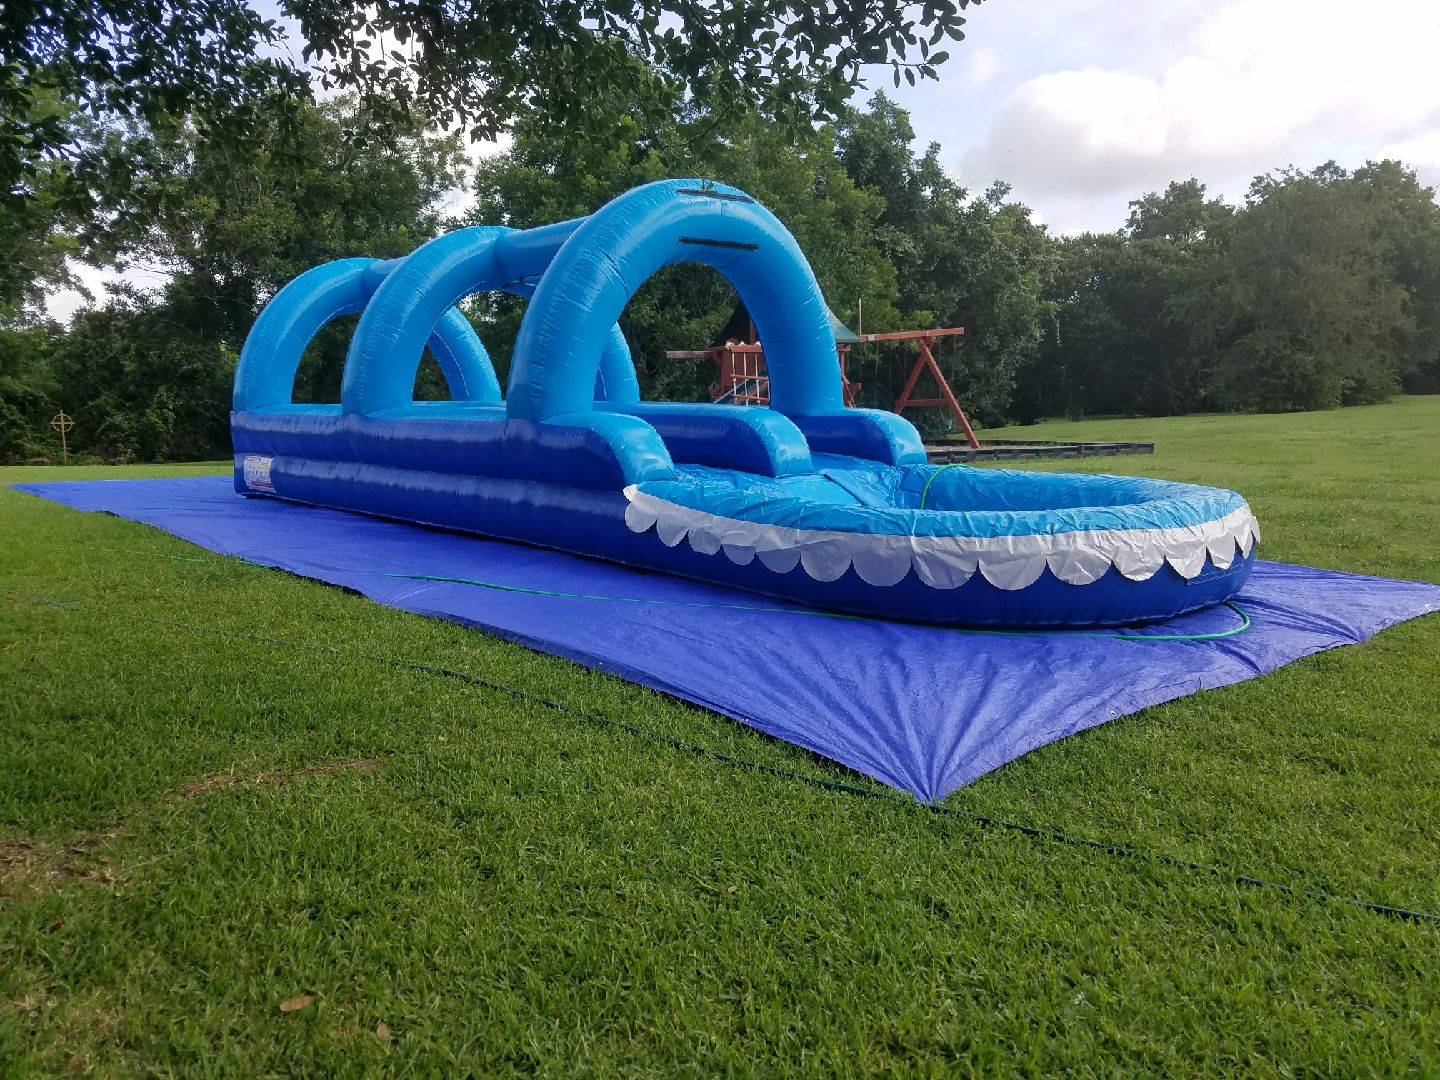 33' long Double Lane Slip And Slide $200.00+ Tax